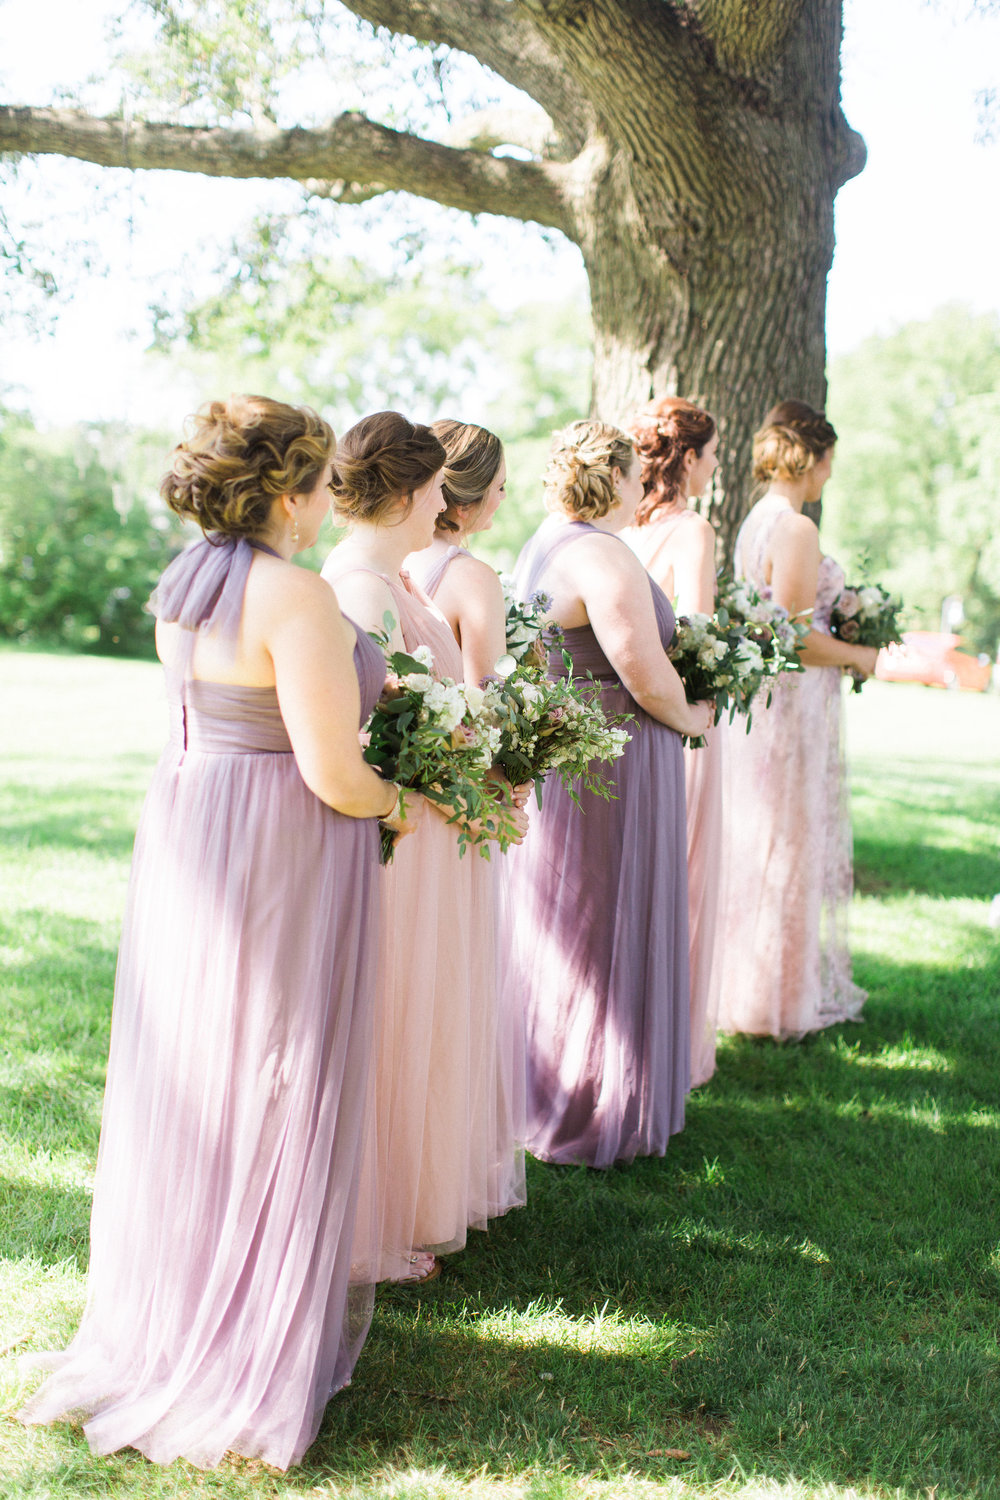 Dusty Purple and Blush Bridesmaids